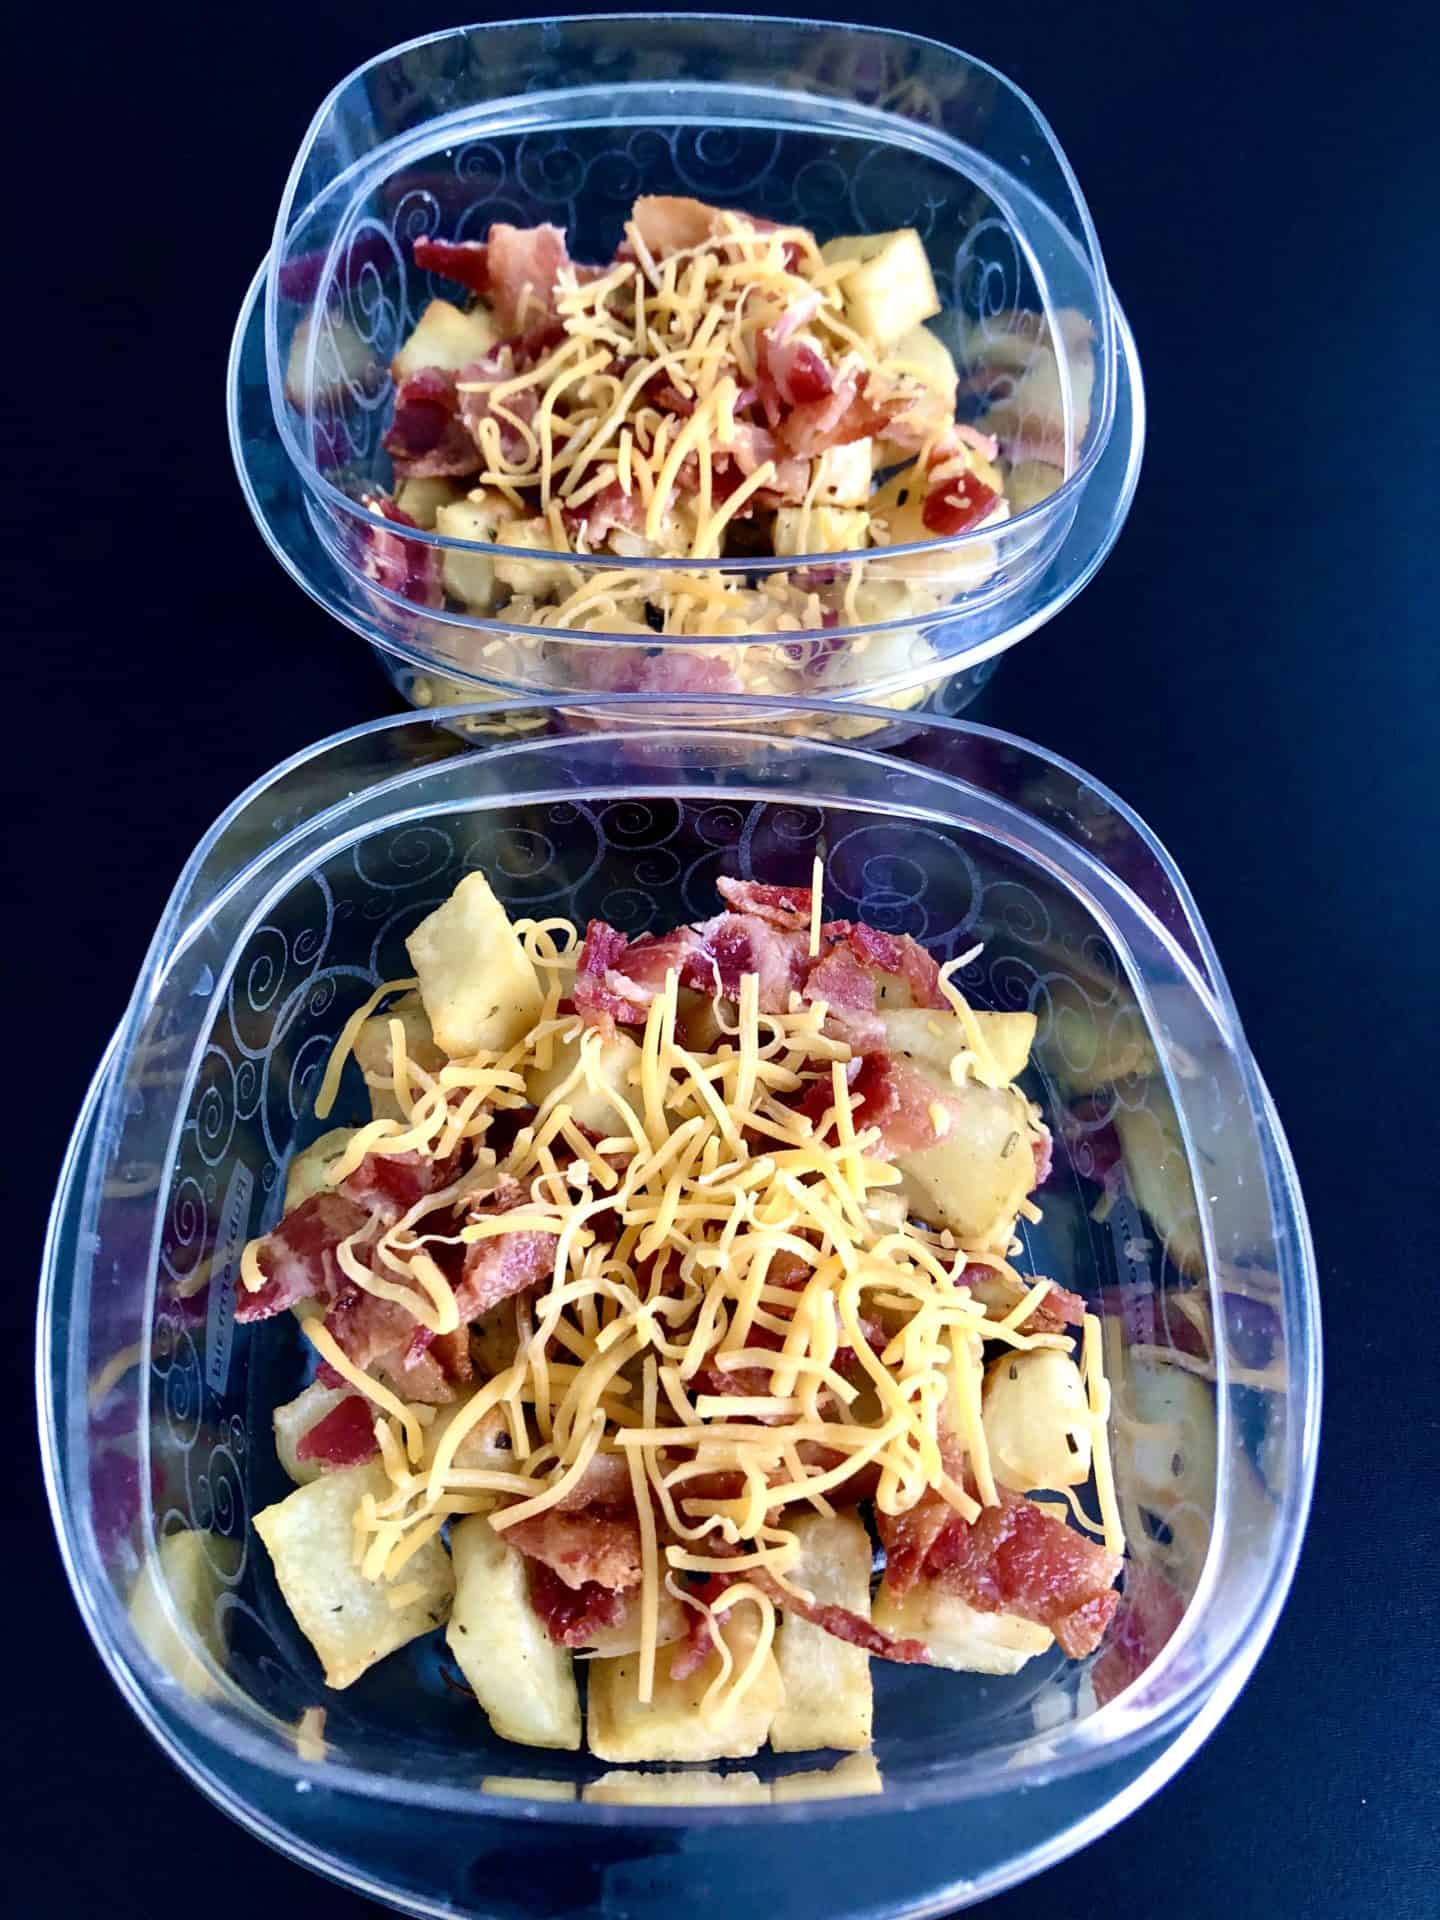 breakfast bowls in Tupperware containers